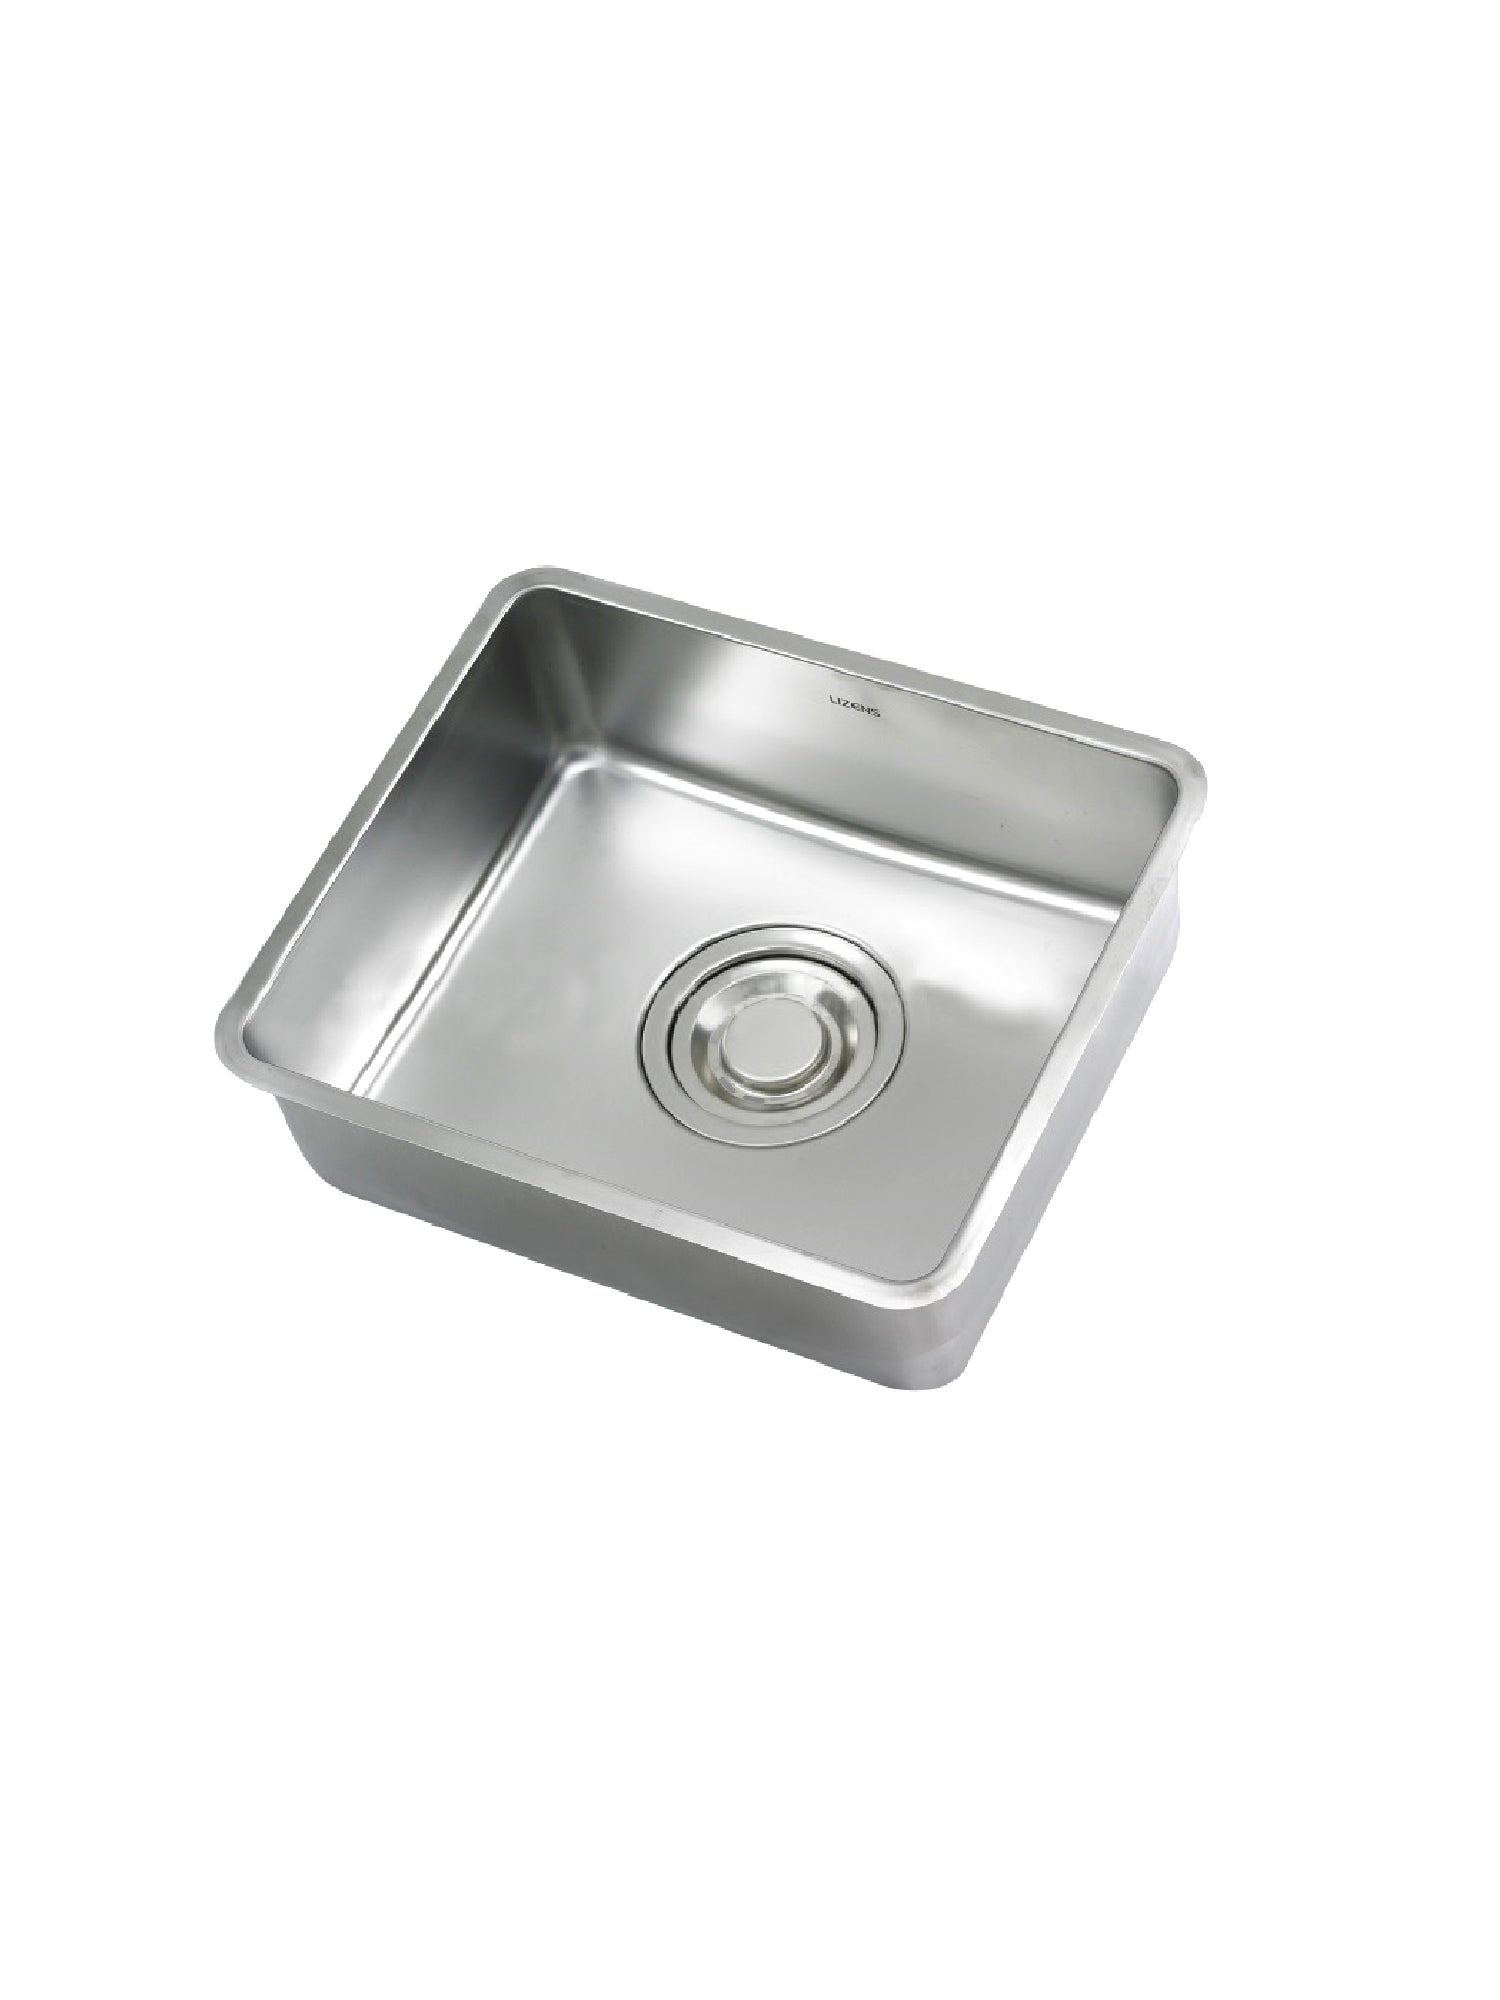 Lizens single bowl kitchen sink lq540 hemsleybathshoppe